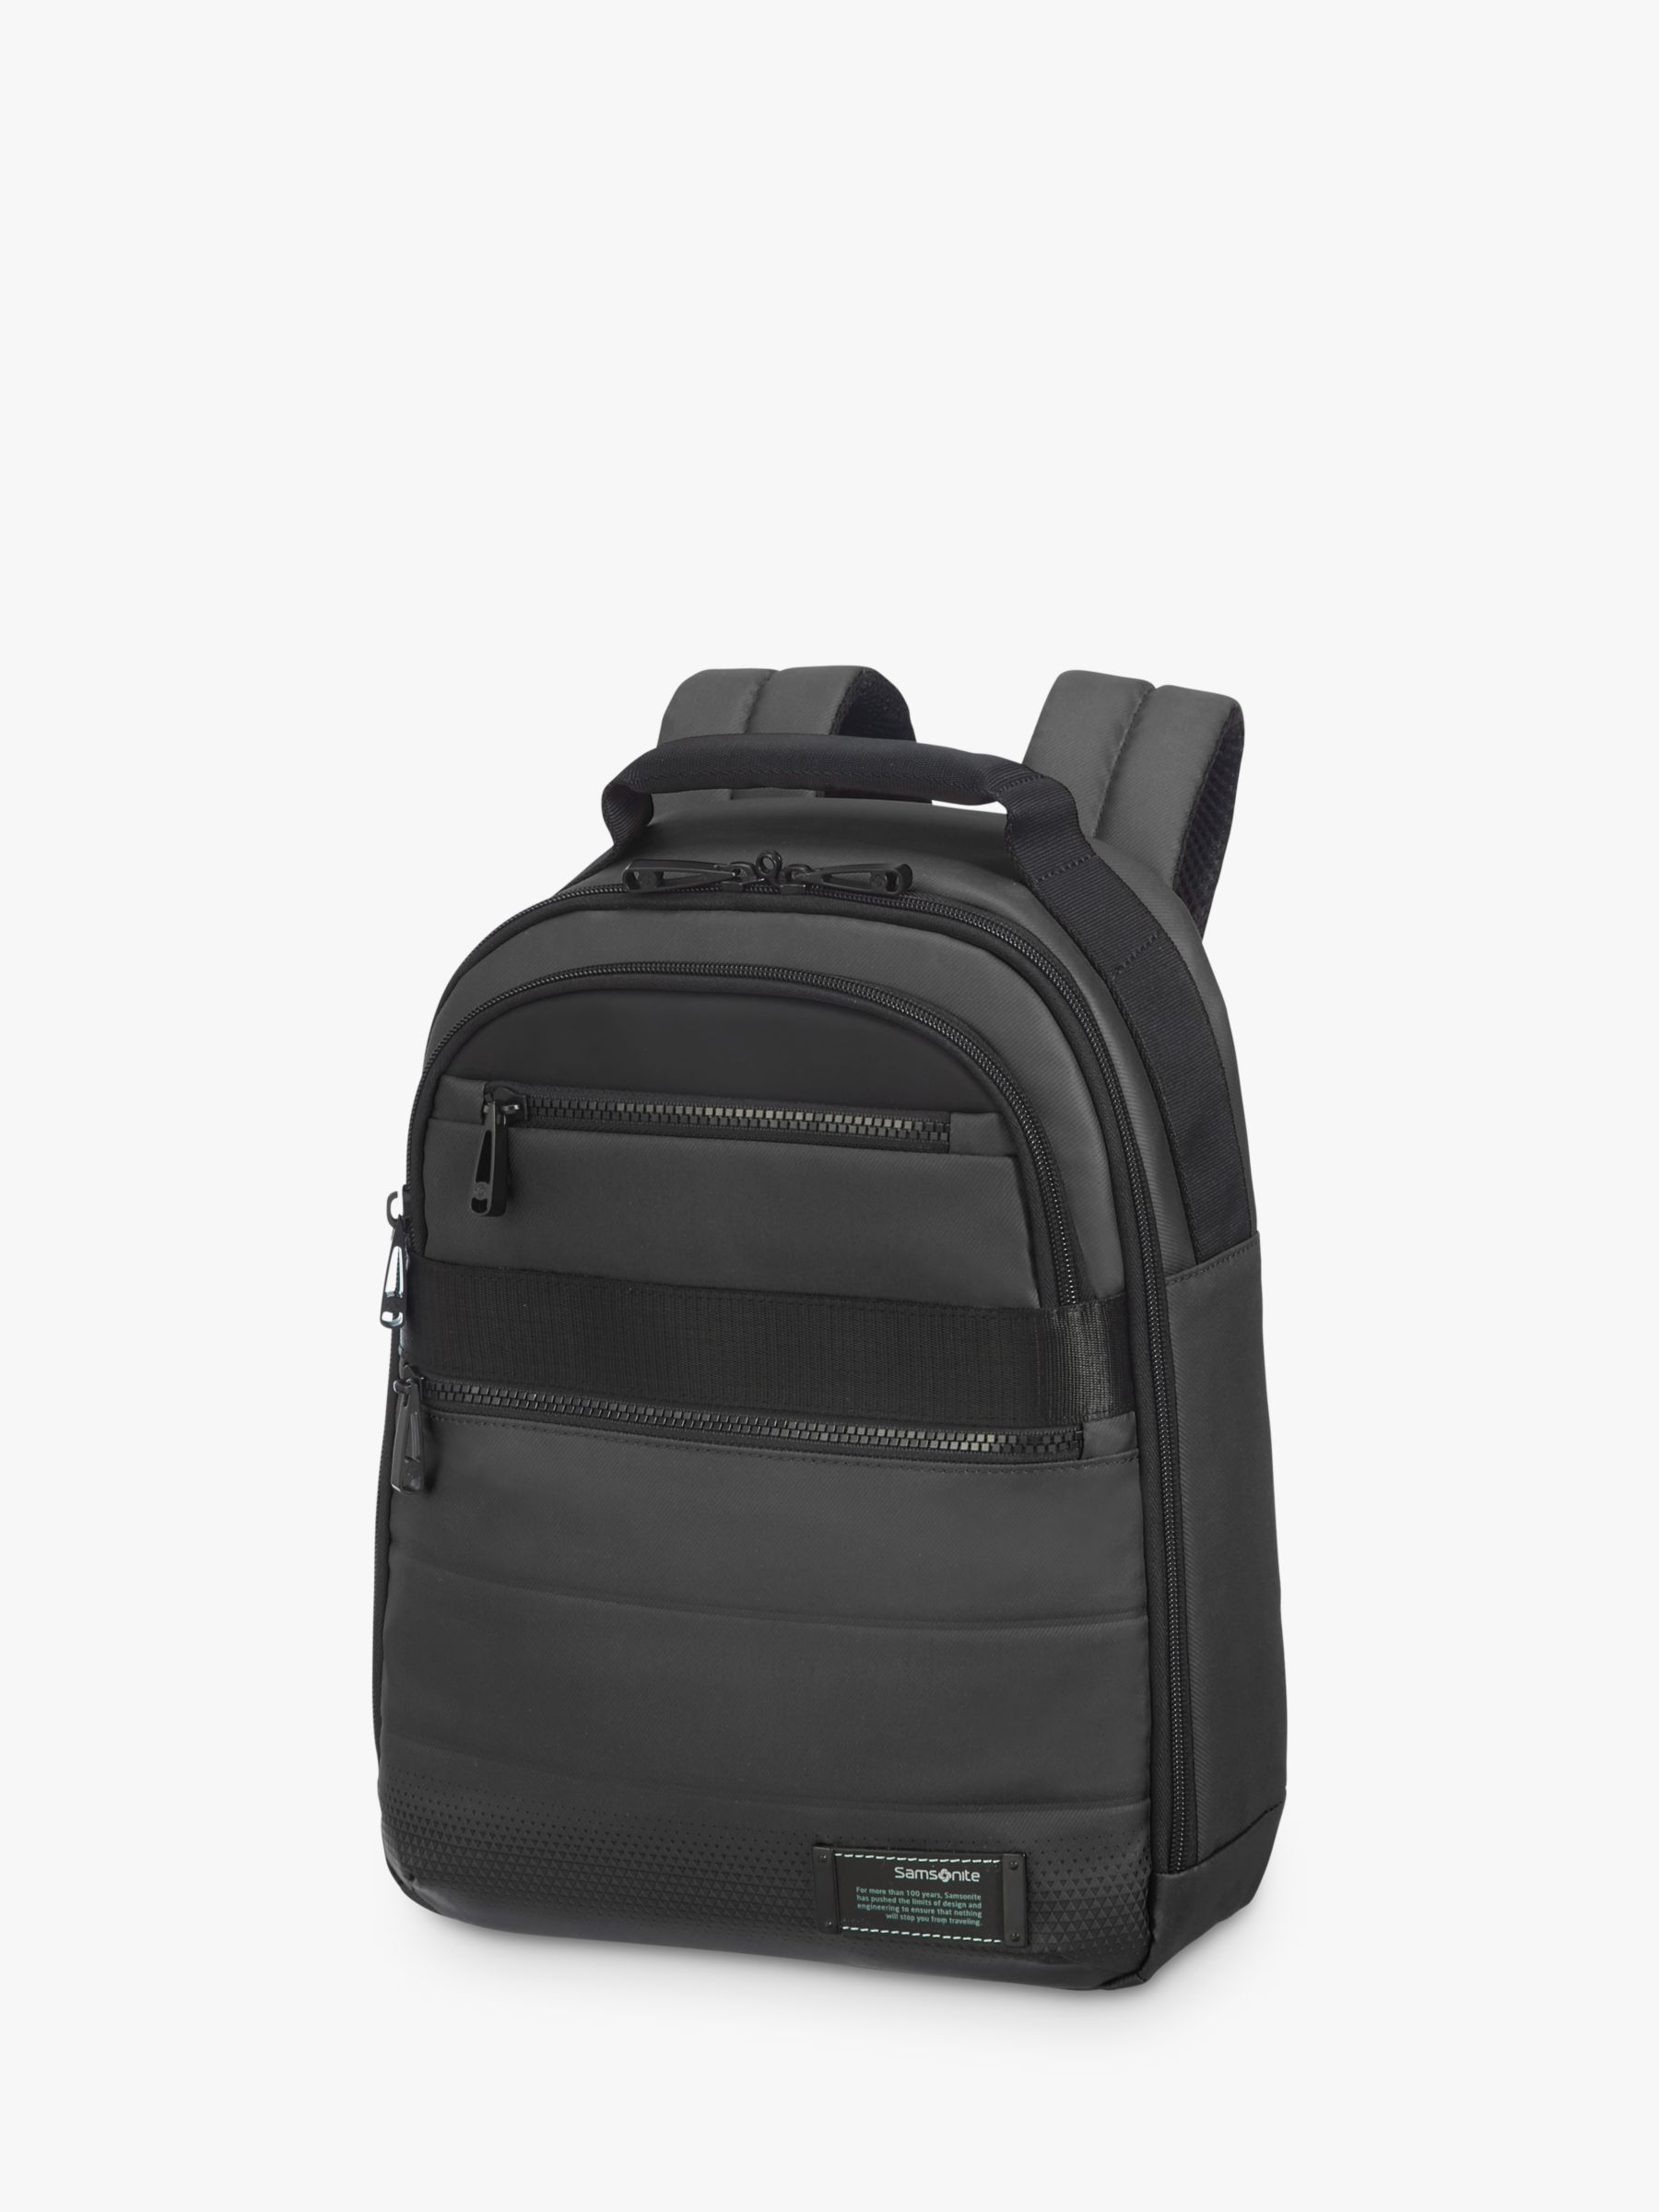 Samsonite Samsonite Cityvibe 2.0 Small Backpack, Jet Black